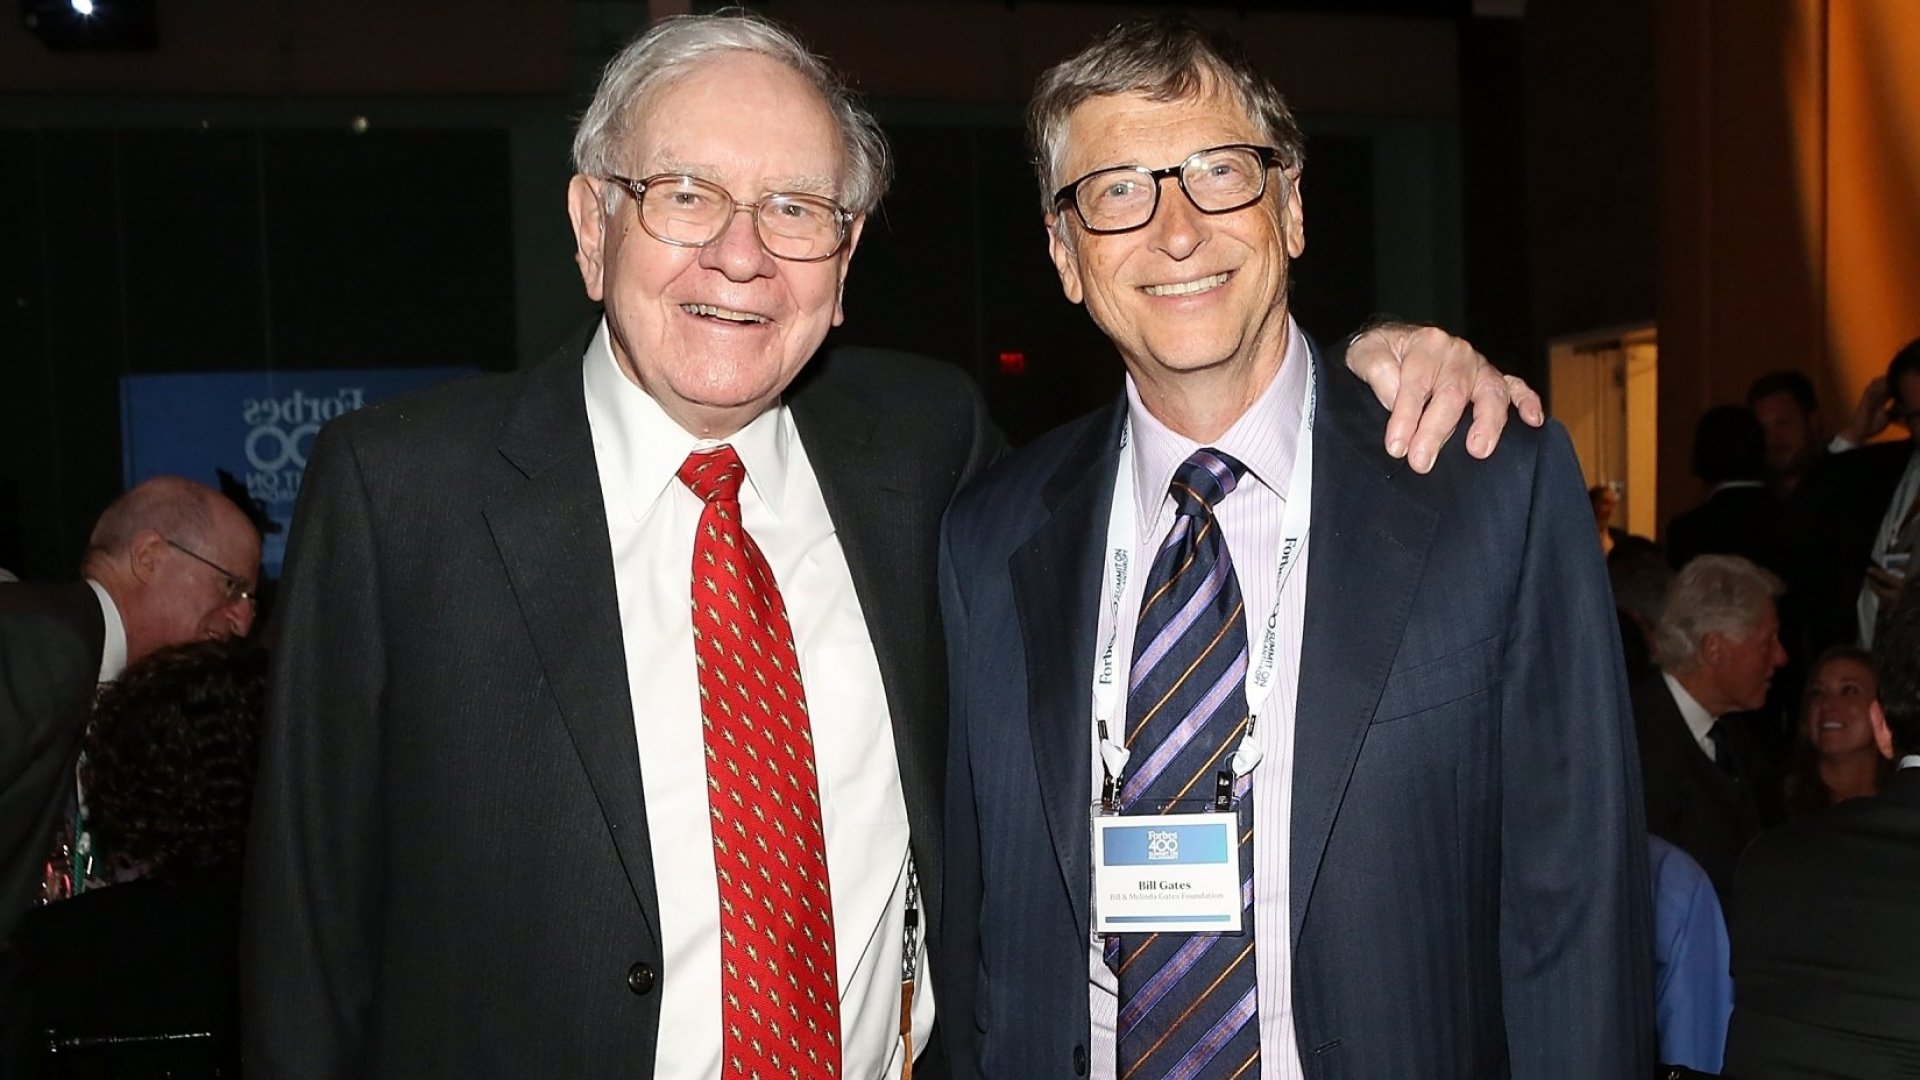 Warren Buffett and Bill Gates Say They're Friends Because They Share These Crucial Leadership Traits